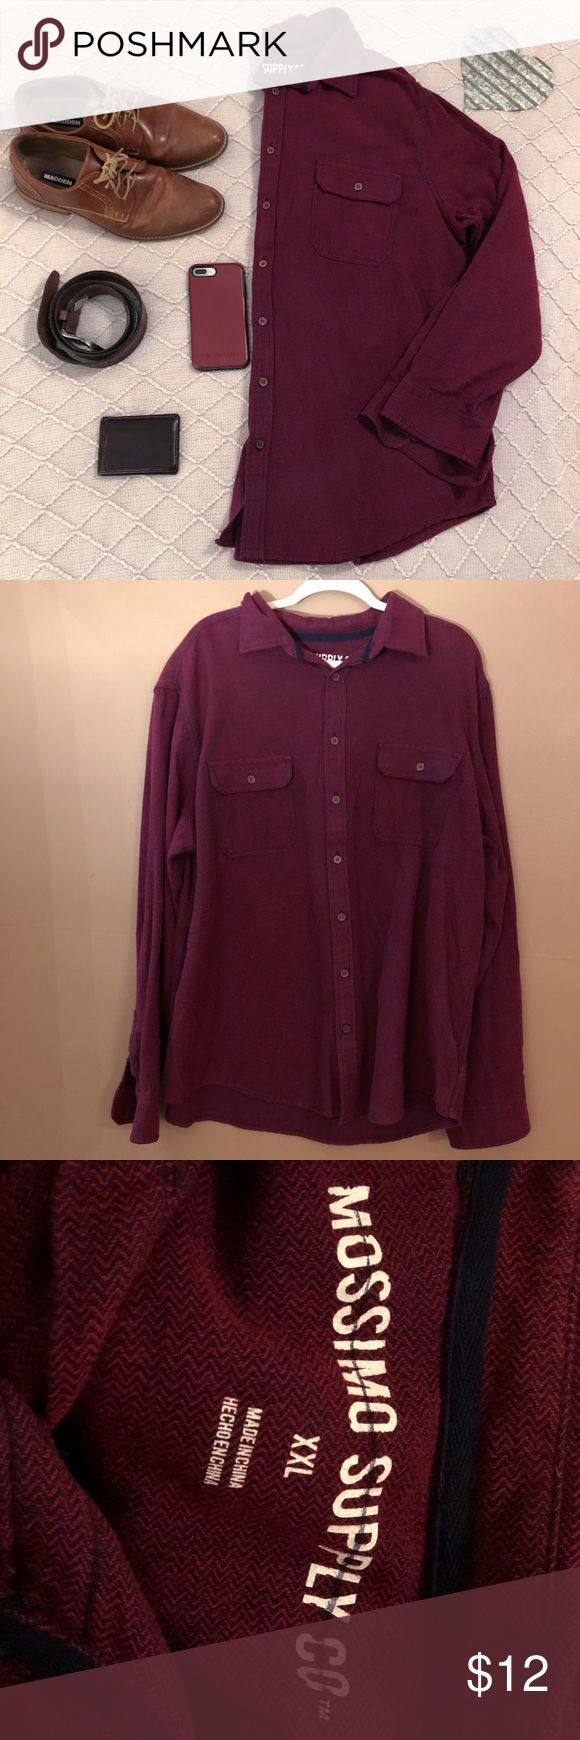 Mossimo Red / Burgundy Long Sleeve Button Down XXL Men's long sleeve button down Size XXL NEW without tags  💯 cotton Mossimo Brand Red /Burgundy Color See detail photo for picture of subtle pattern  *listing is for Shirt only* Mossimo Supply Co Shirts Casual Button Down Shirts